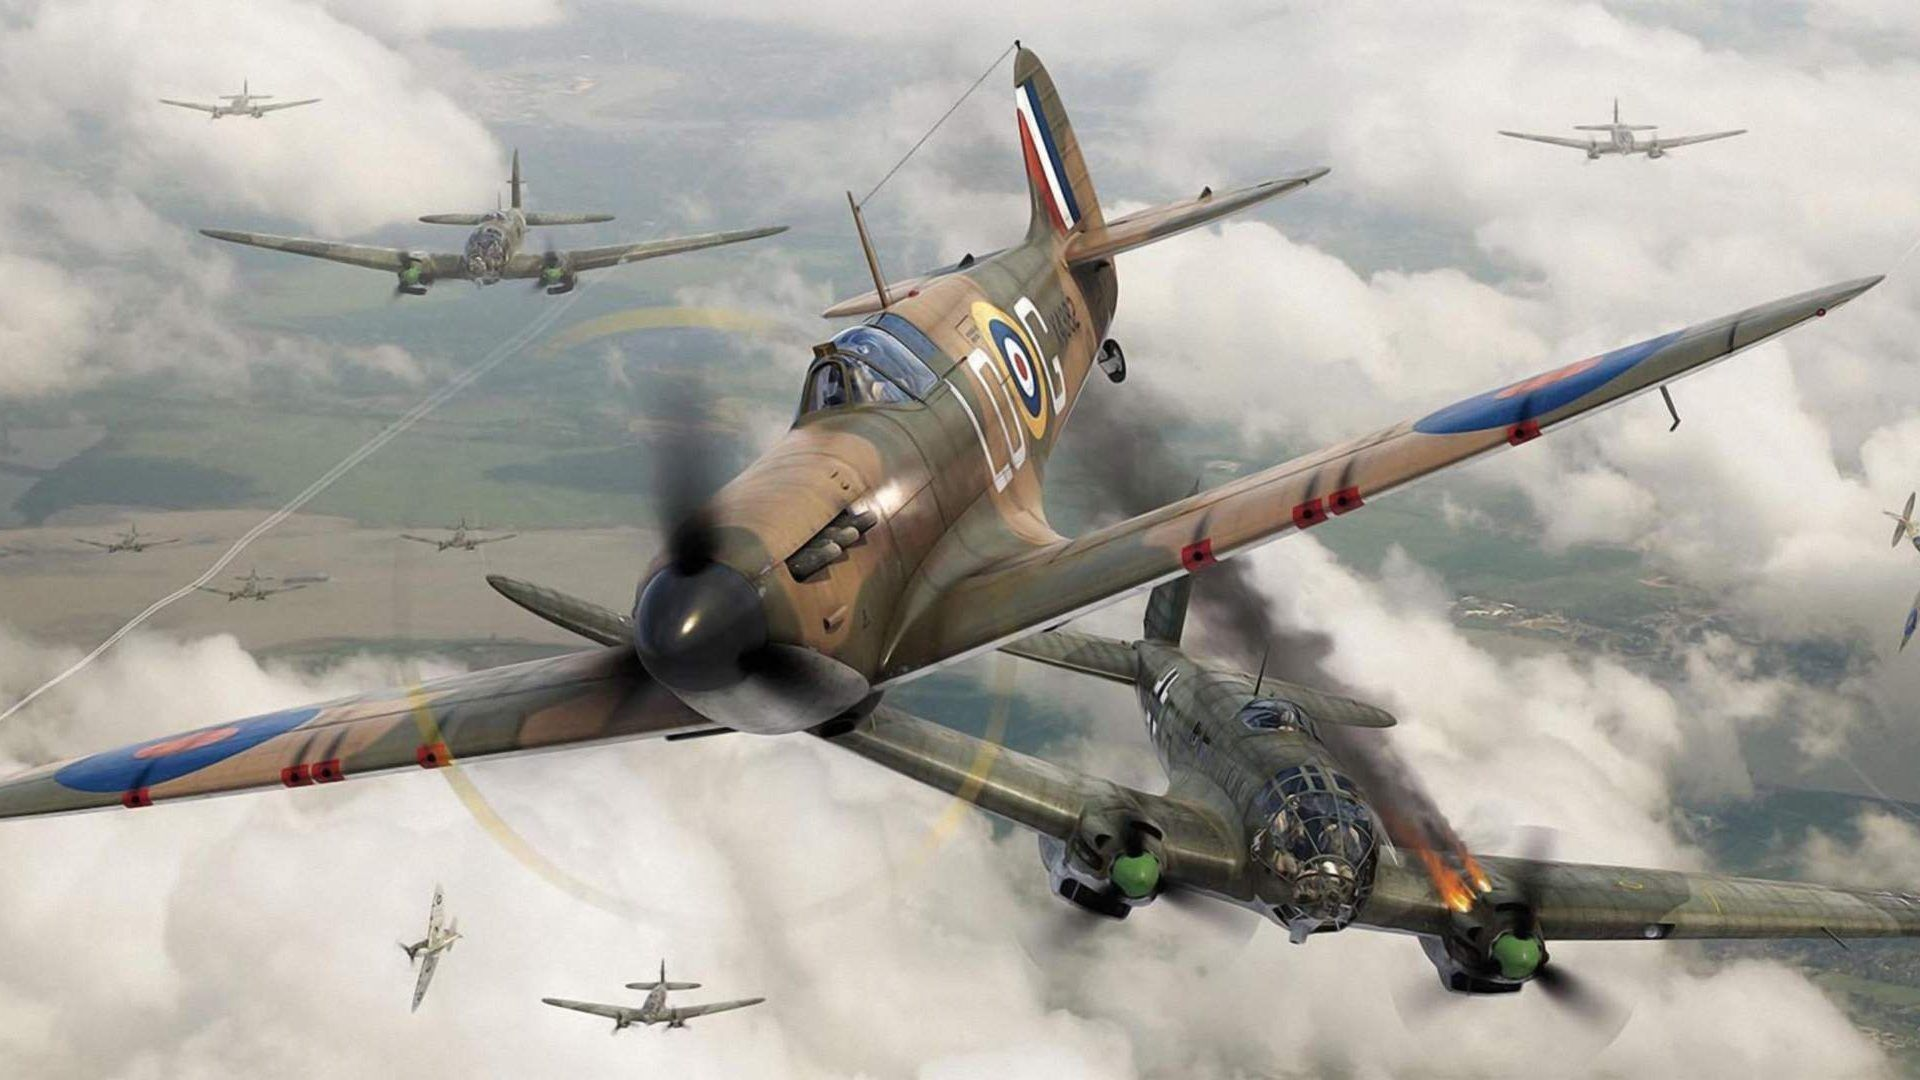 Ww2 Fighter Plane Wallpapers Top Free Ww2 Fighter Plane Backgrounds Wallpaperaccess